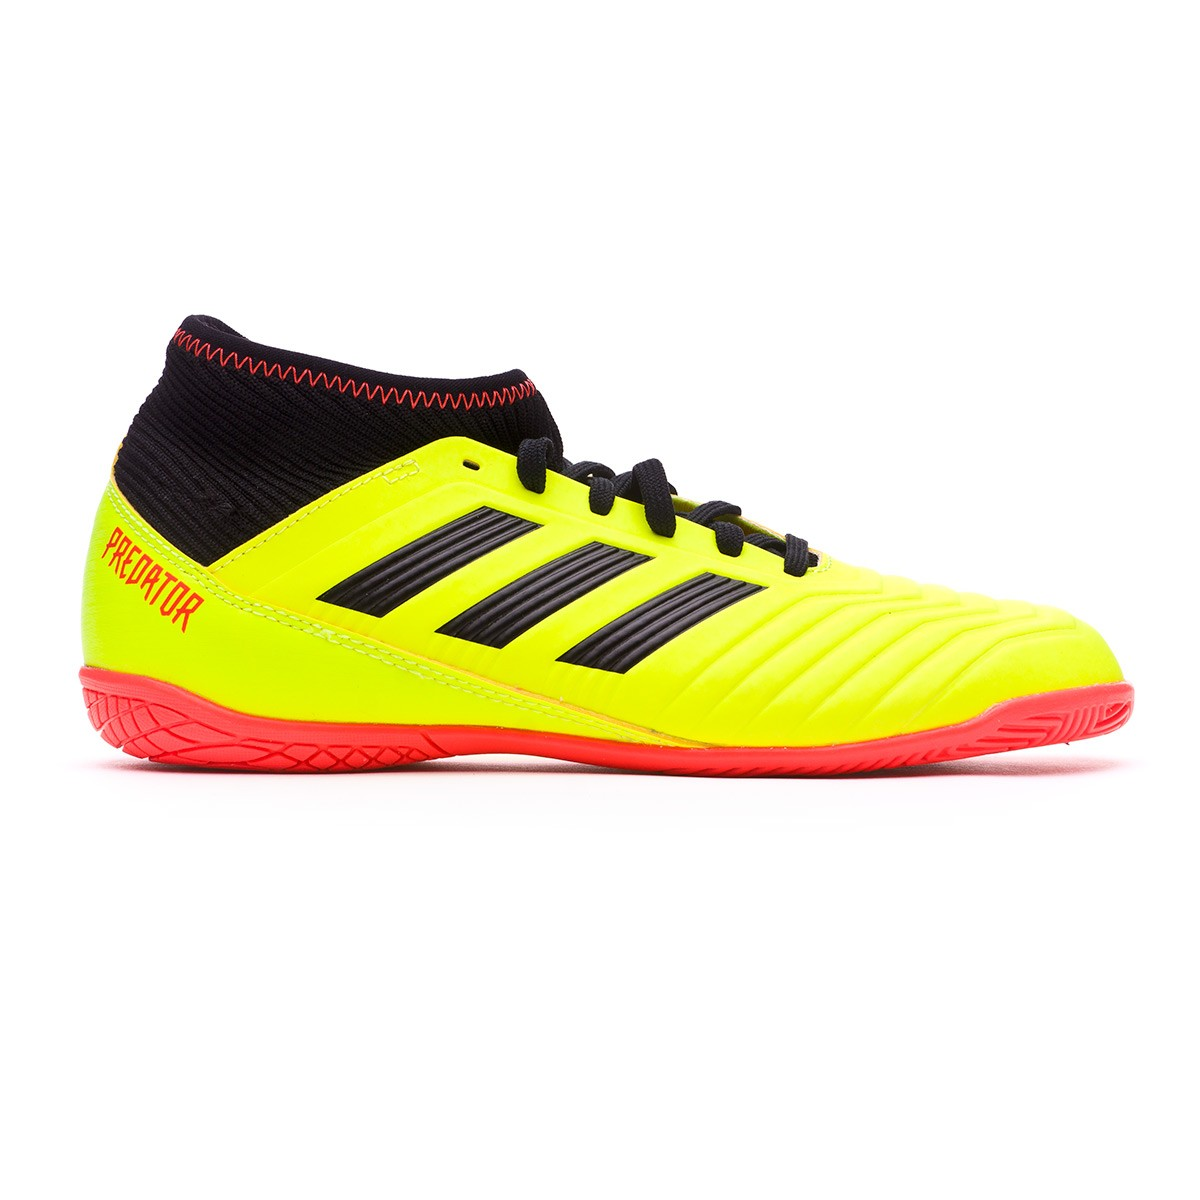 2a916560f76 ... where to buy futsal boot adidas kids predator tango 18.3 in solar  yellow black 9fd1c 13910